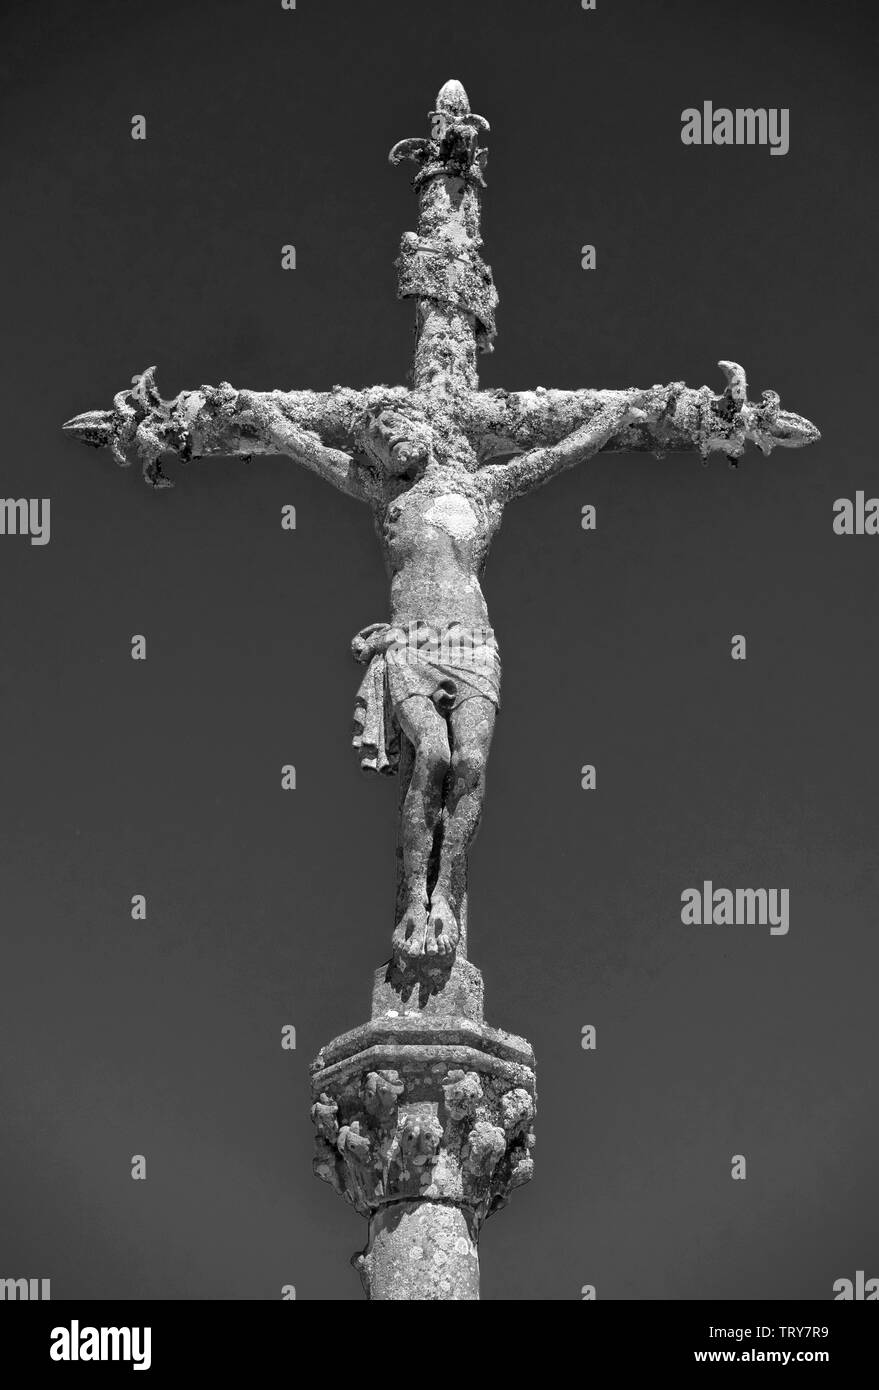 Monochrome picture of a stone statue of Christ on the cross at a cemetery in La Feuillée, Brittany, France. Stock Photo